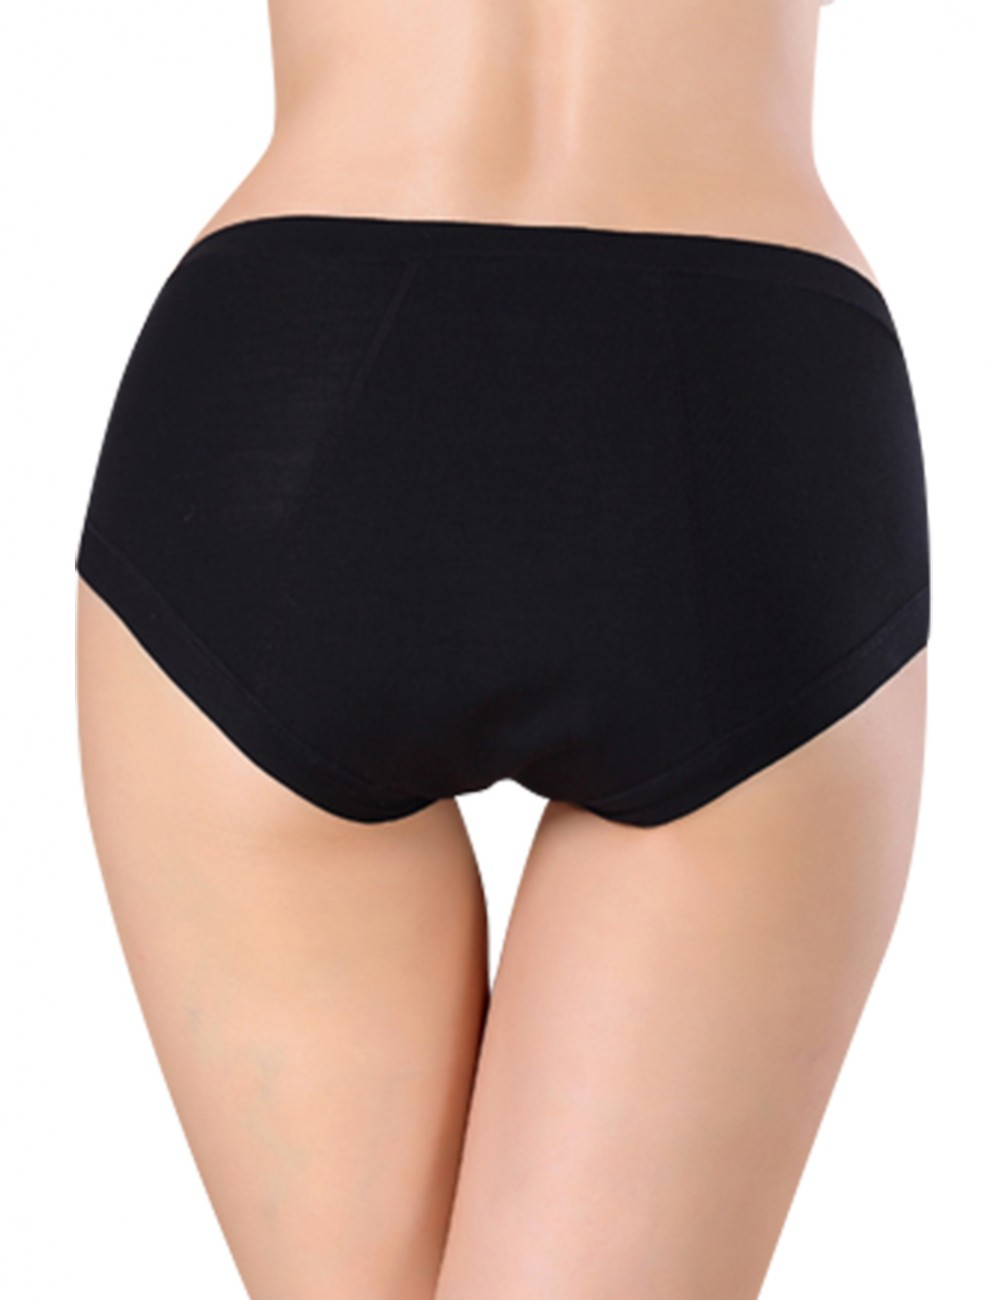 Extravagant Black Bamboo Physiological Briefs Superior Comfort